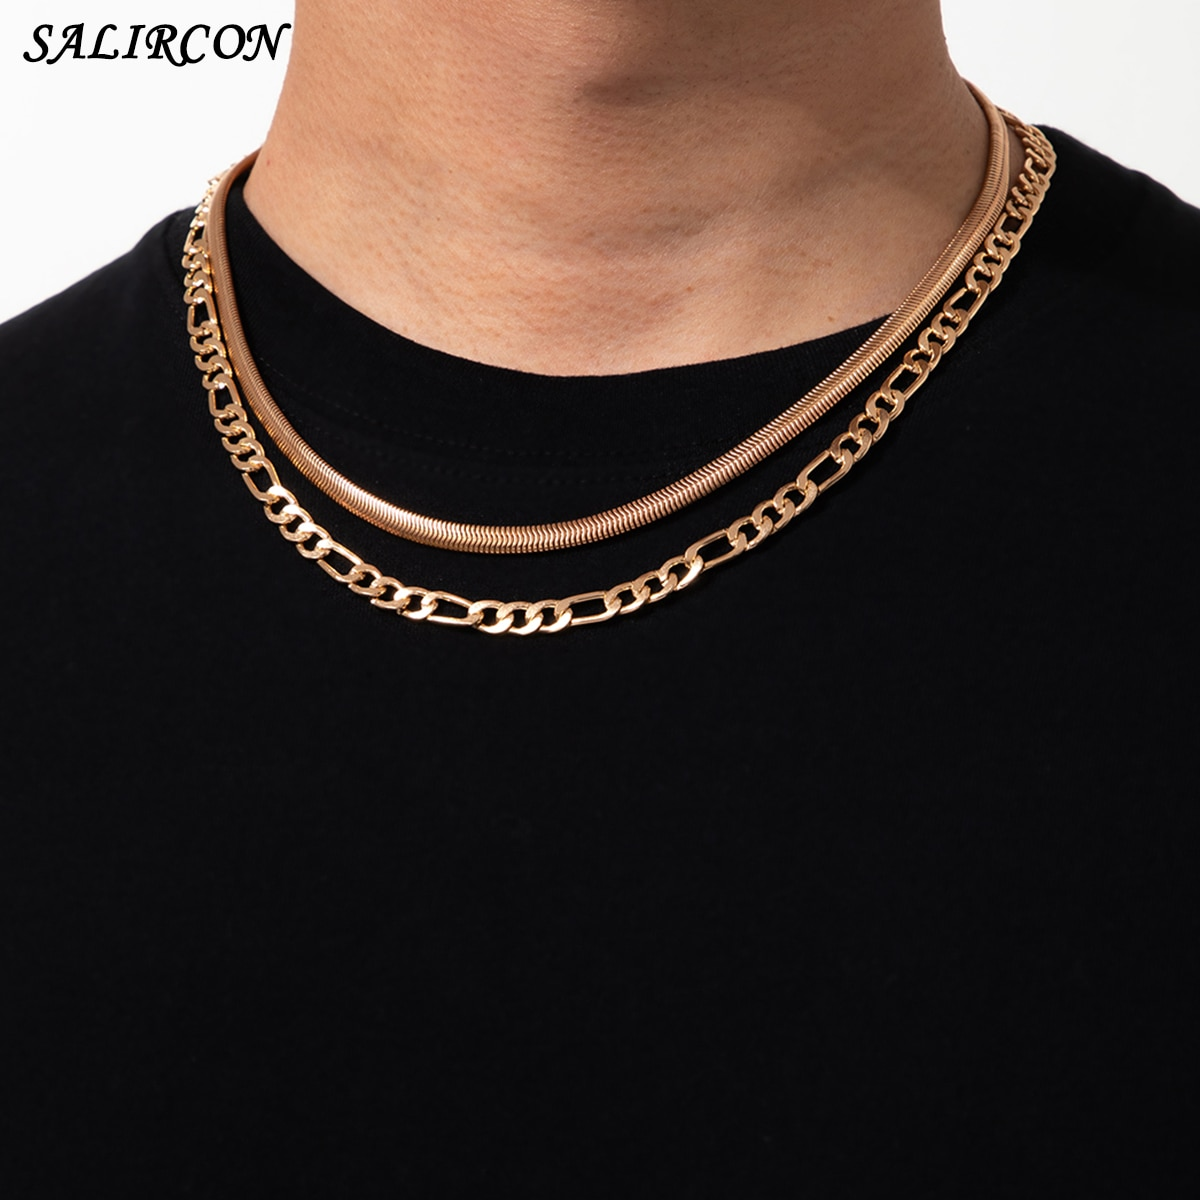 Vintage Copper Link Snake Chain Necklace for Women Men Kpop Aesthetic Layered Simple Chain Choker Necklace New Fashion Jewelry